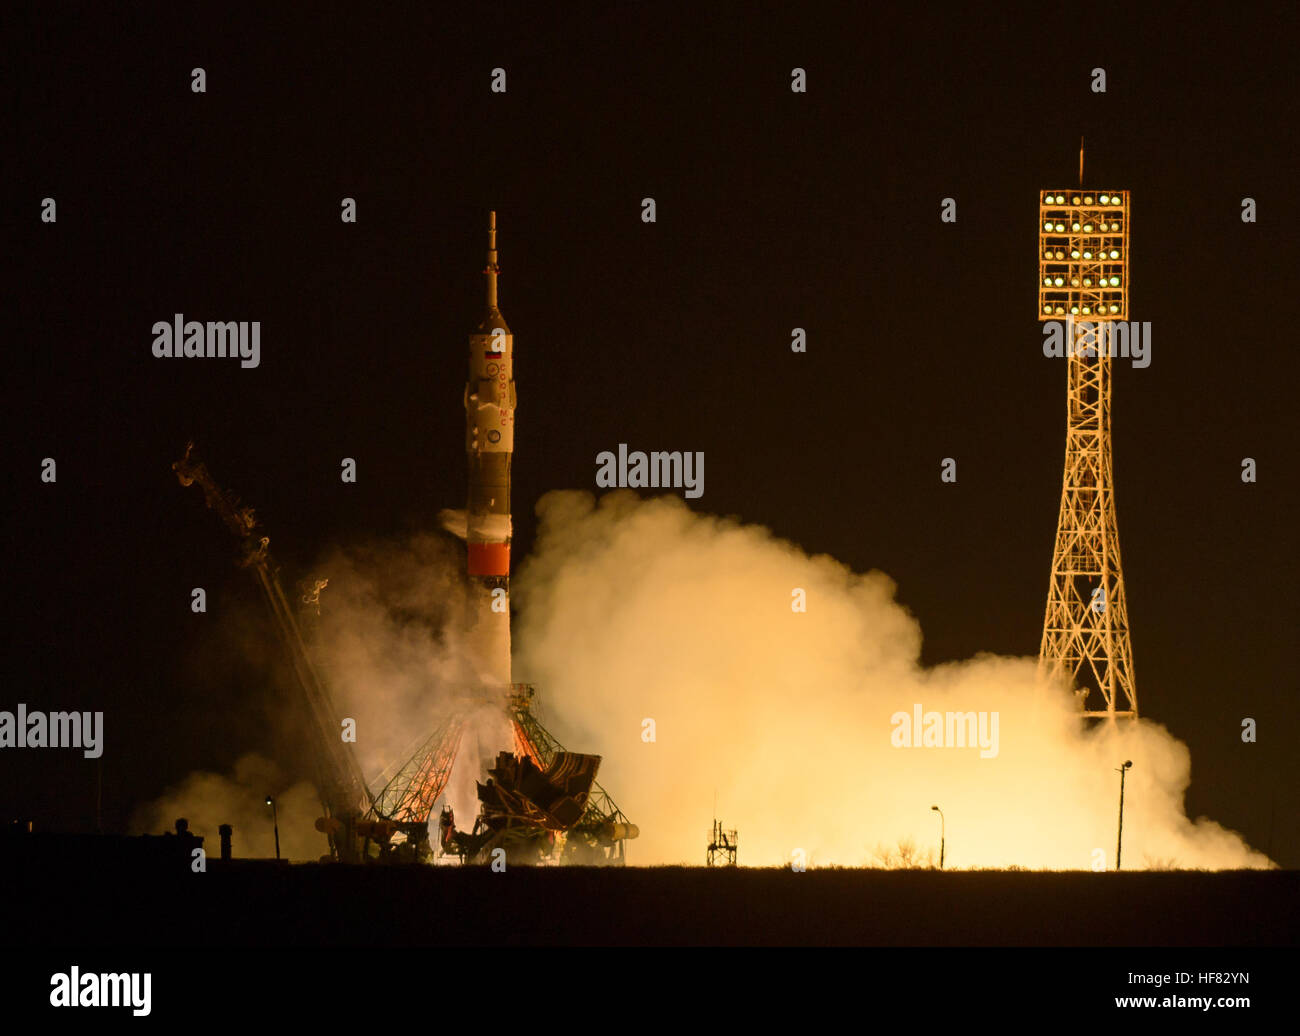 The Soyuz MS-03 spacecraft launches from the Baikonur Cosmodrome with Expedition 50 crewmembers NASA astronaut Peggy - Stock Image